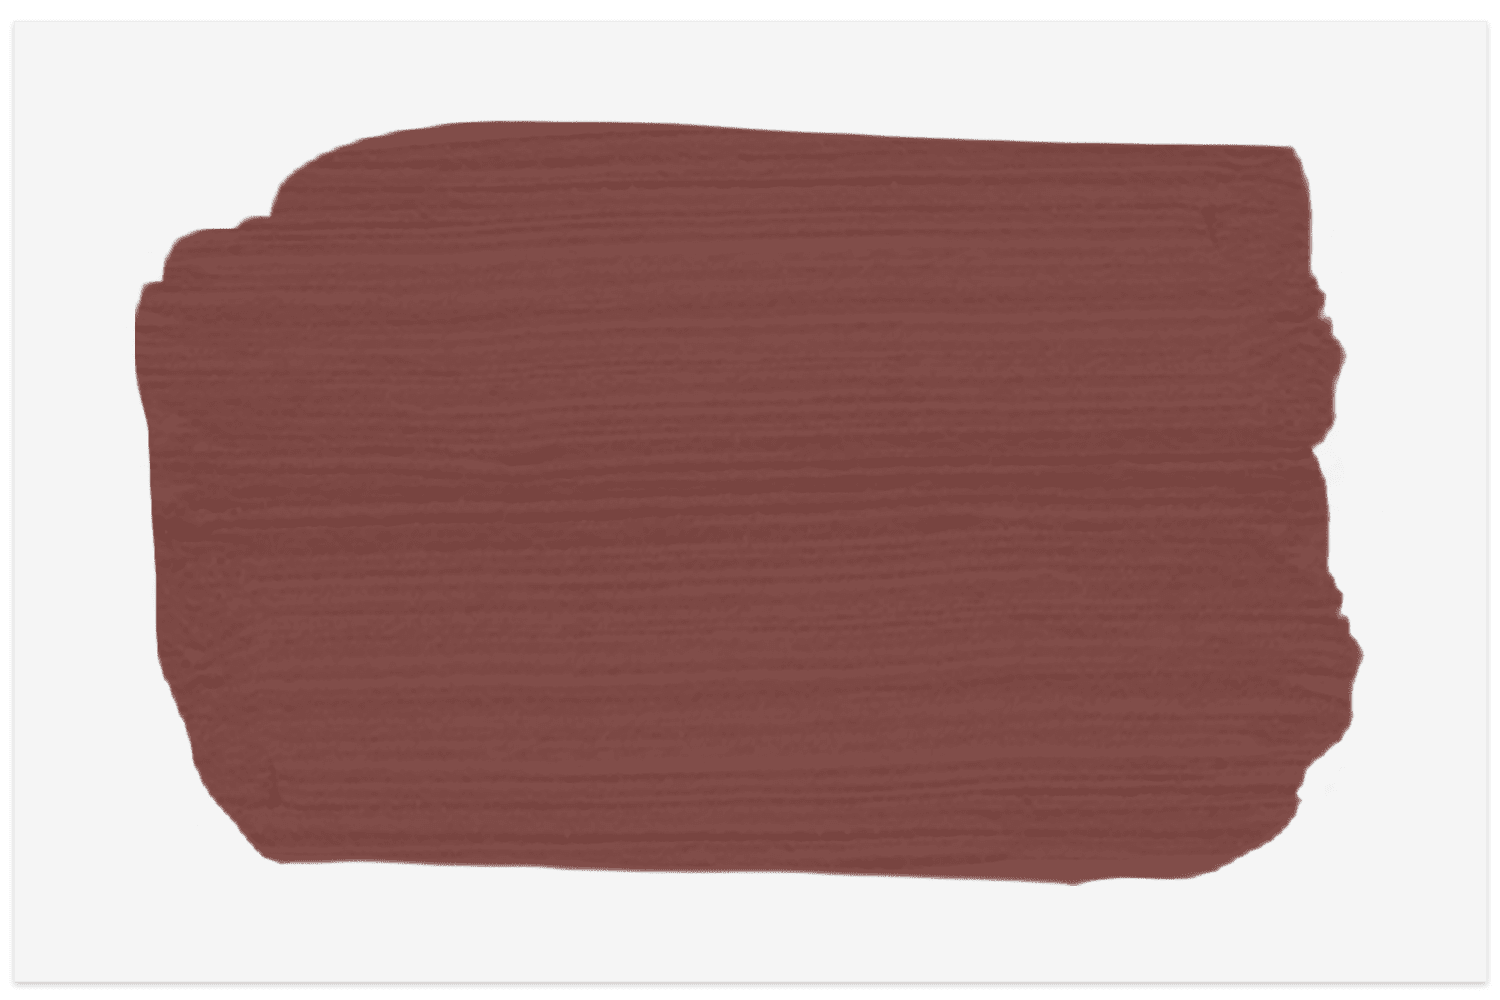 Swatch of PPG Cherokee